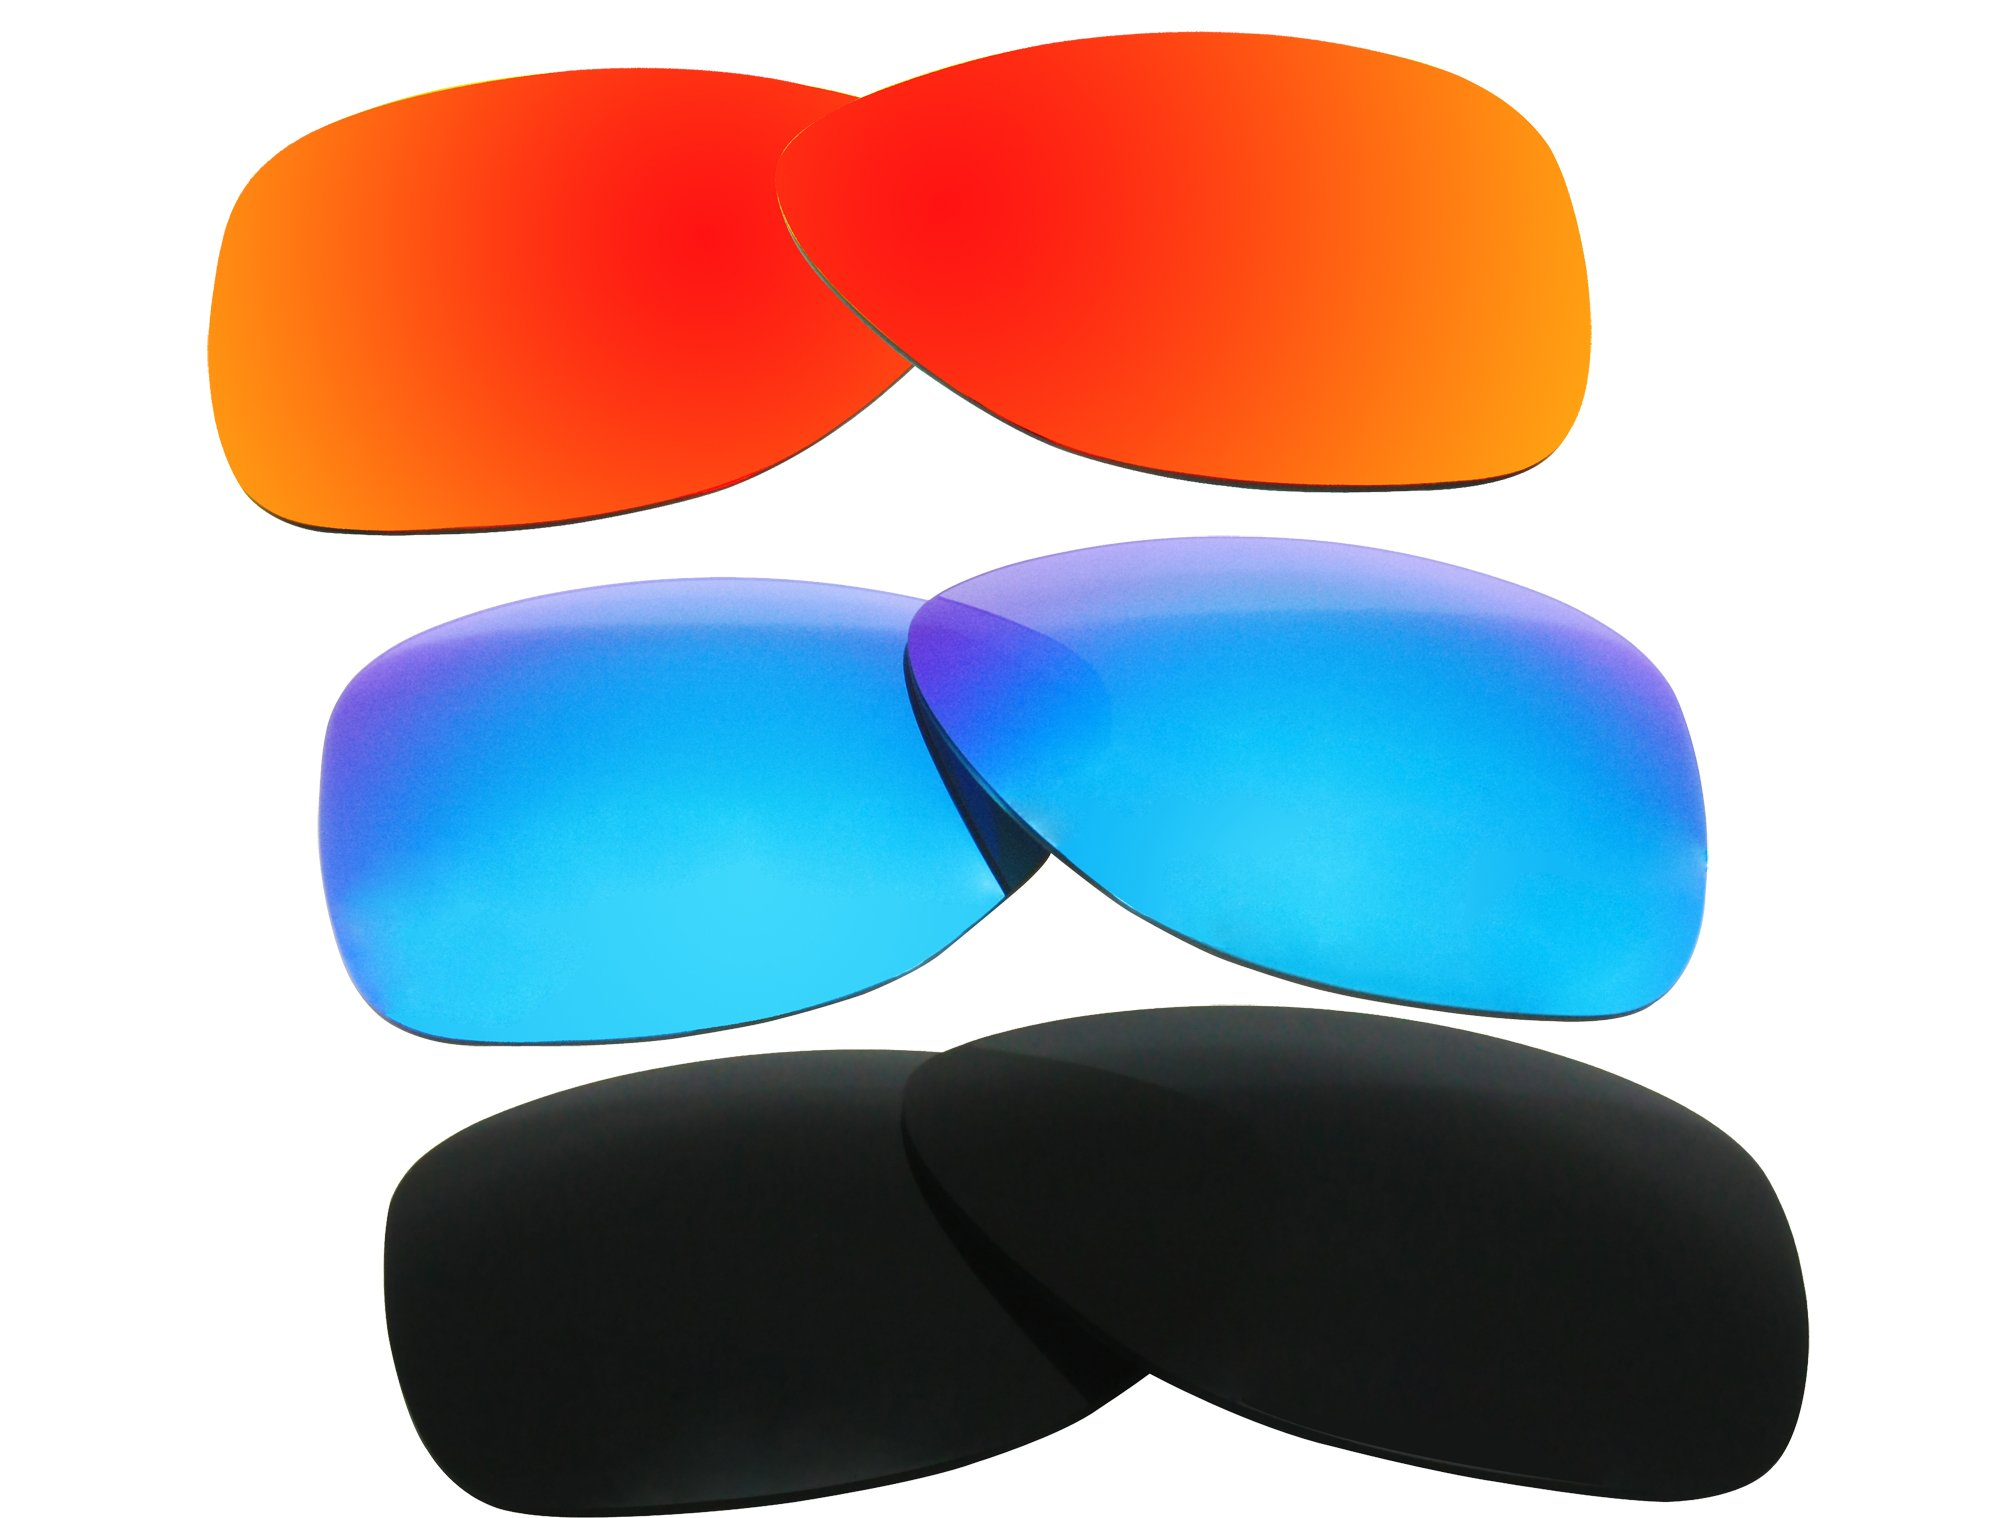 3 Pairs Polarized Replacement Sunglasses Lenses for Oakley Dispatch 2 with Excellent UV Protection